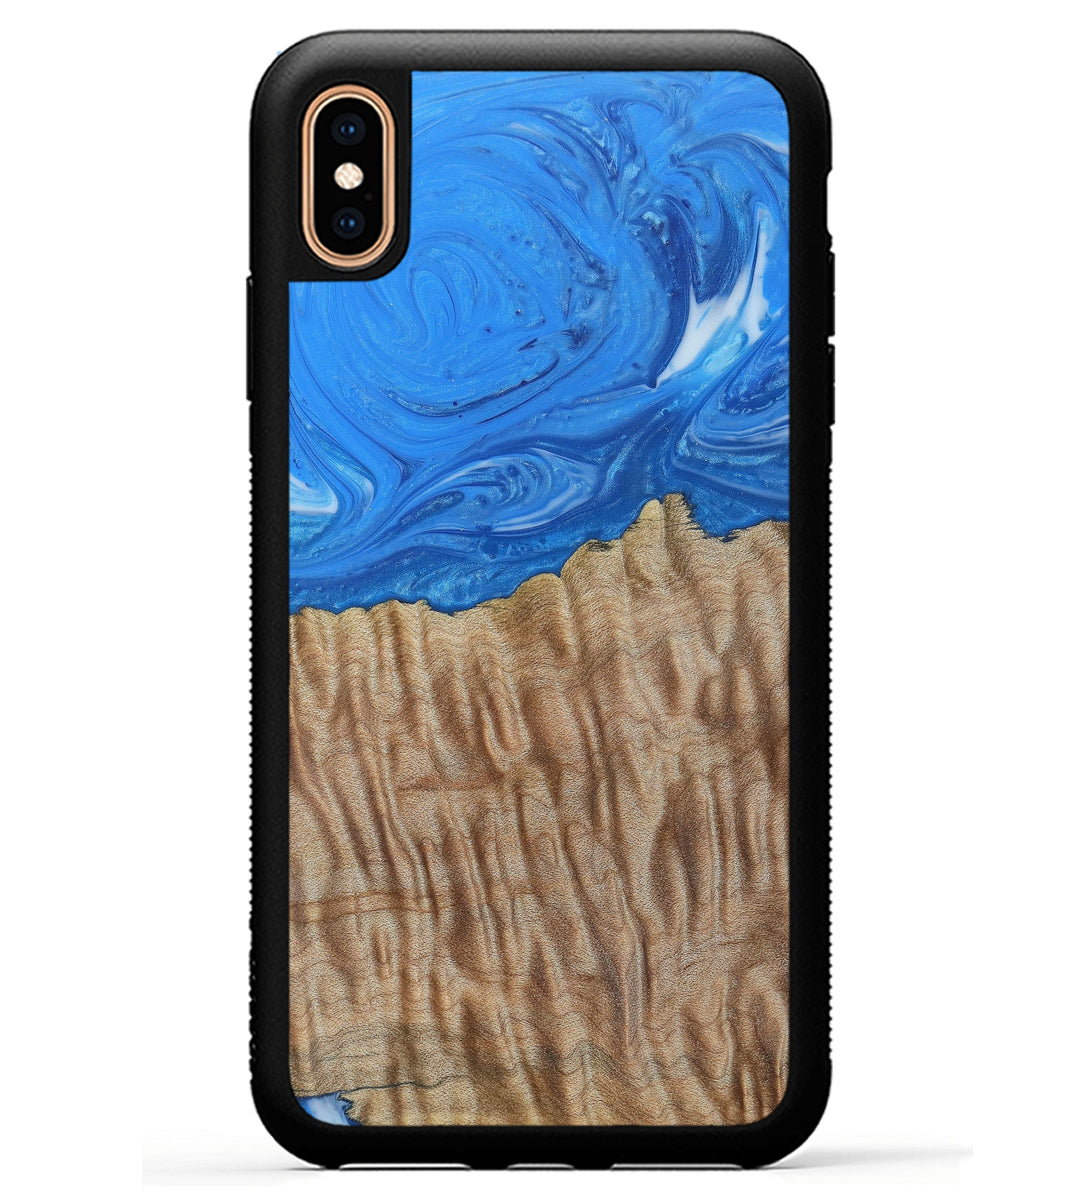 iPhone Xs Max Wood+Resin Phone Case - Liliana (Light Blue, 369269)